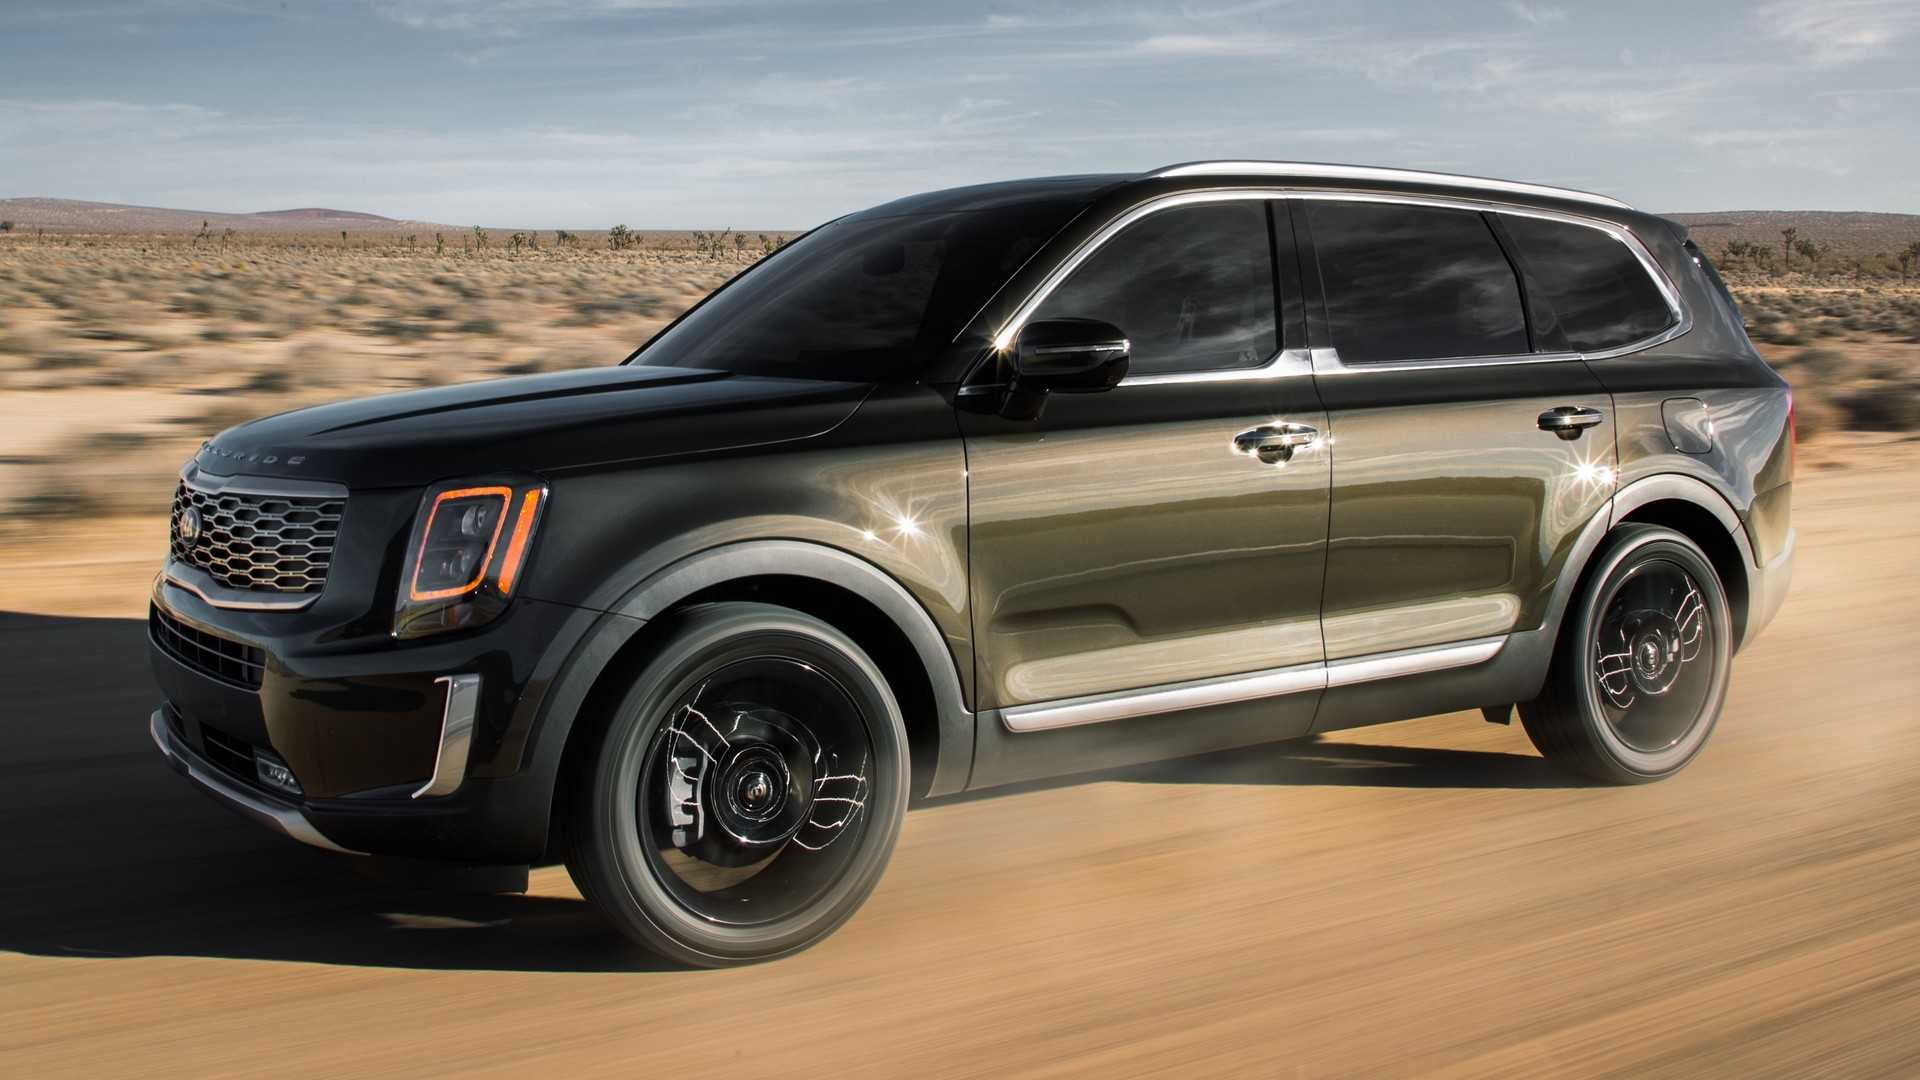 25 All New 2020 Kia Telluride Black Copper Price Design And Review